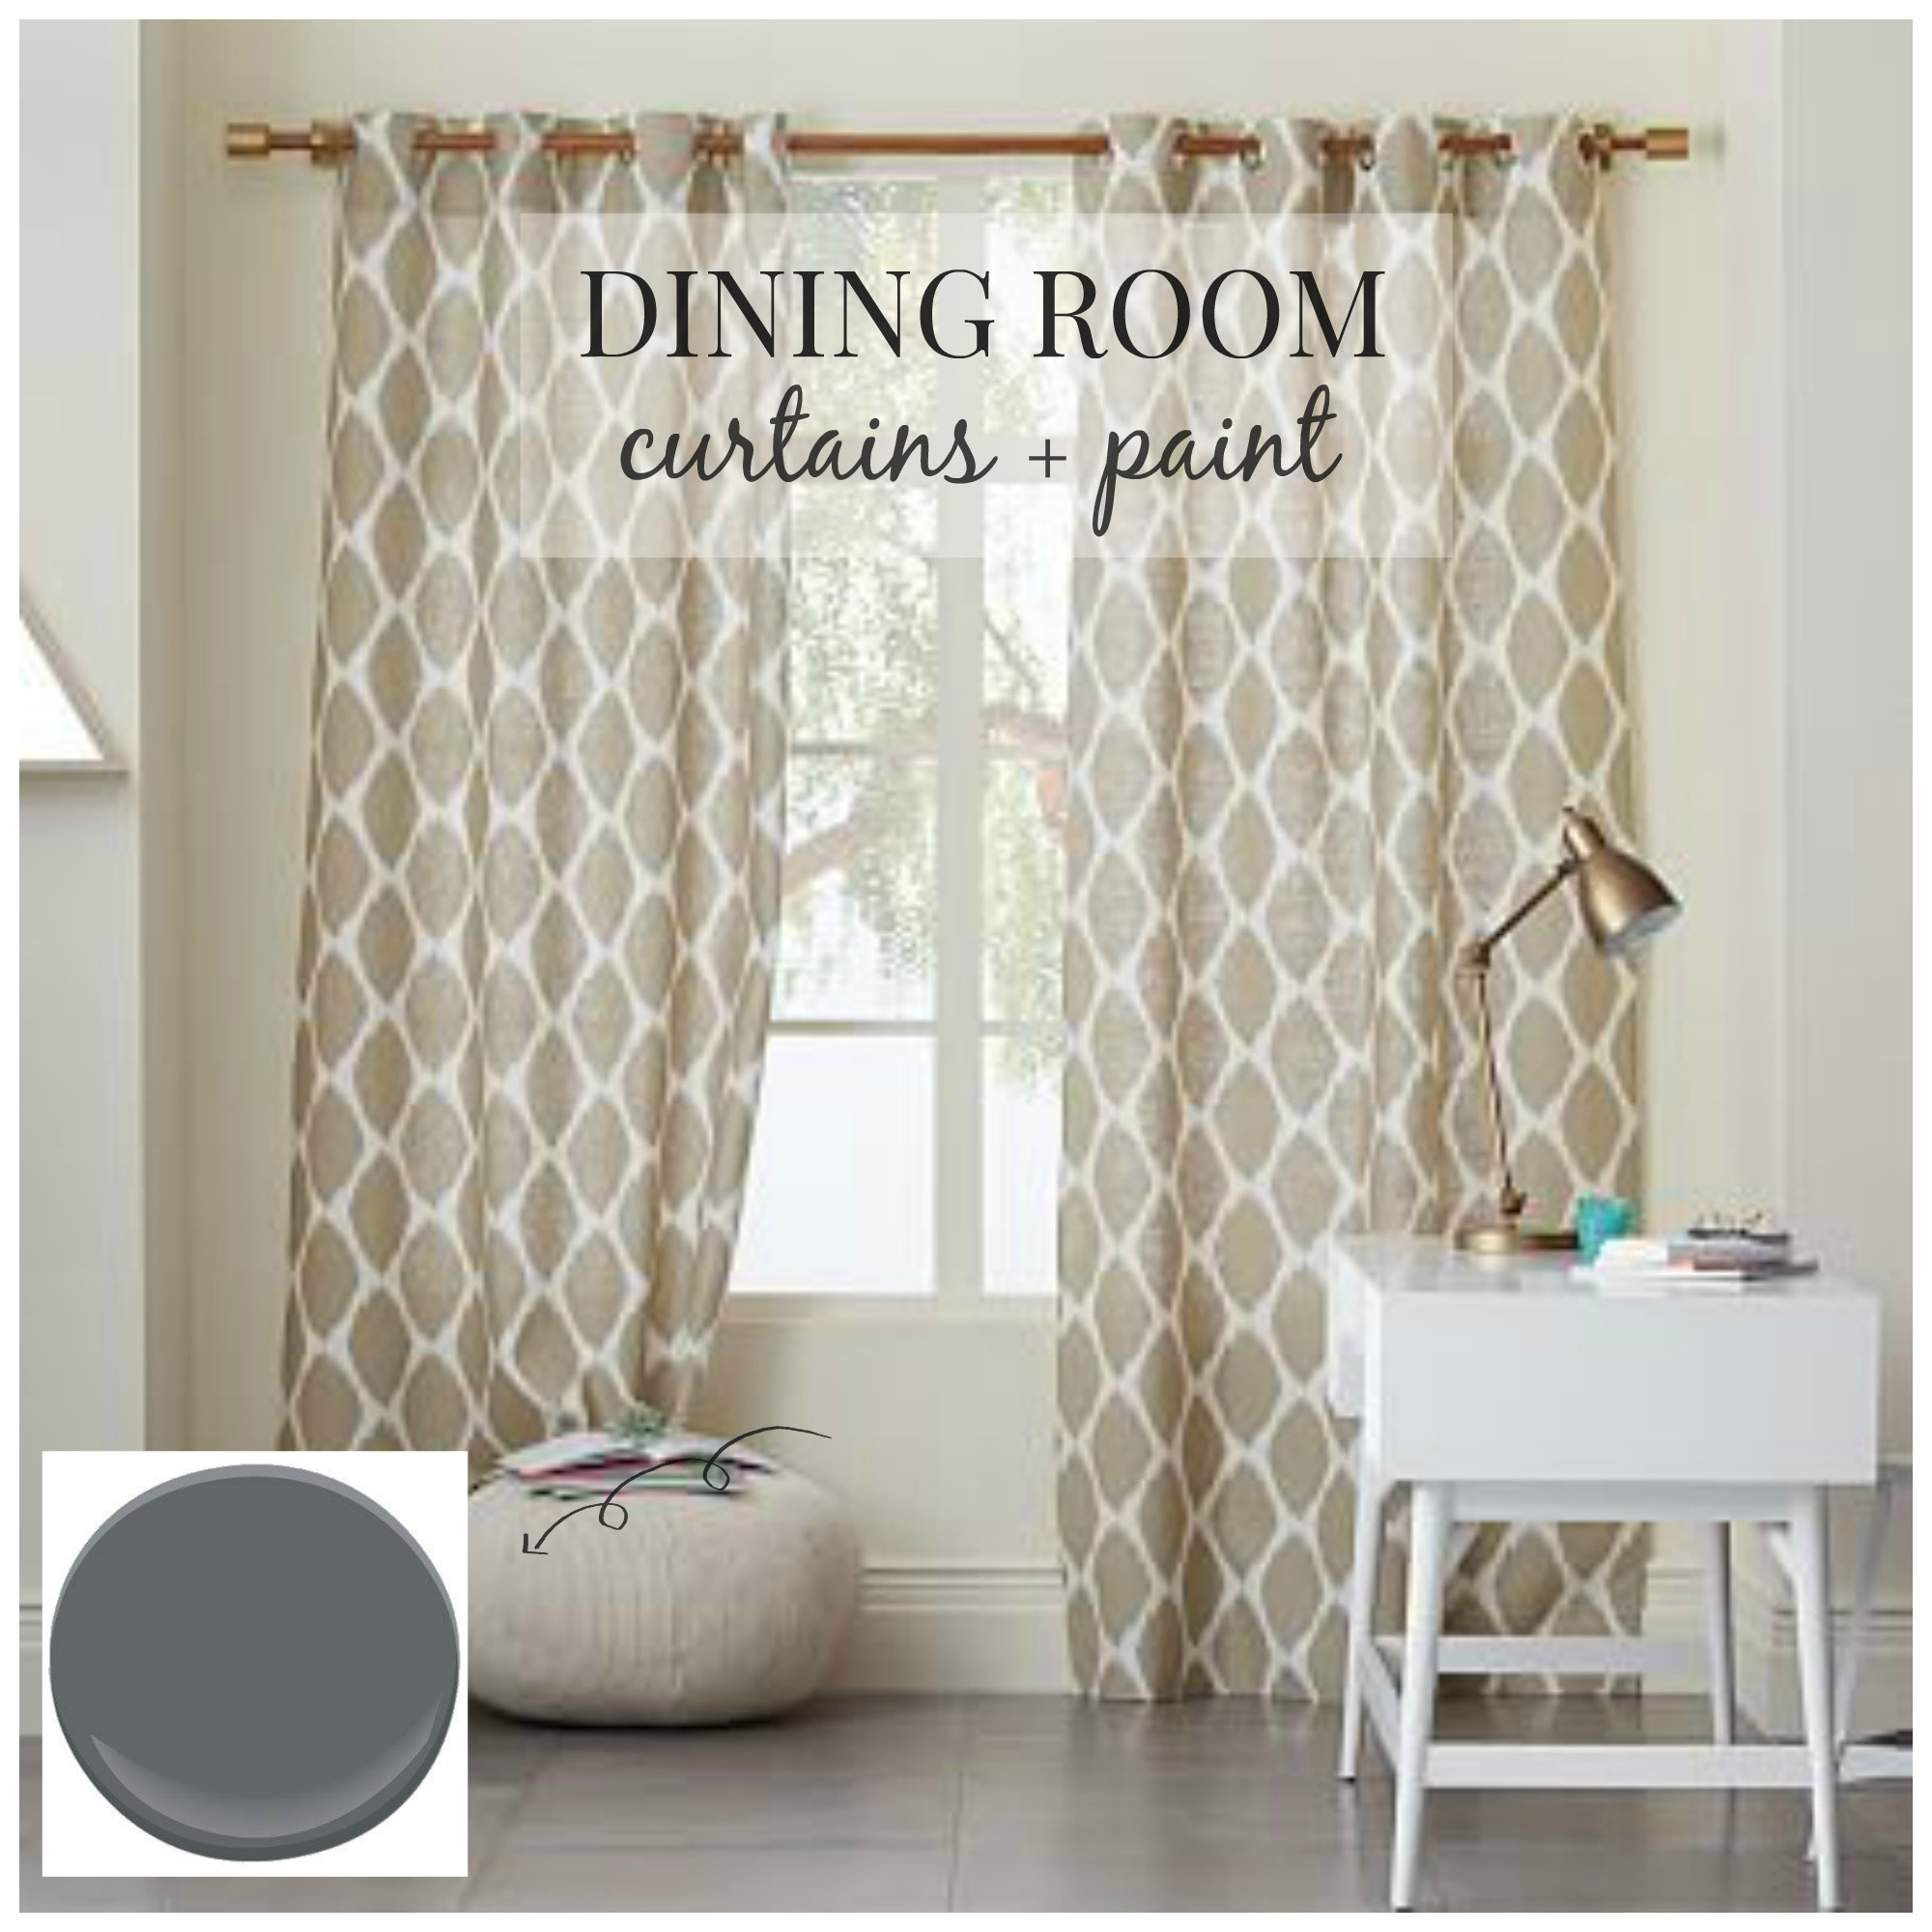 Dining Room Design-Curtains + Paint - City Farmhouse on Curtains For Farmhouse Living Room  id=65327